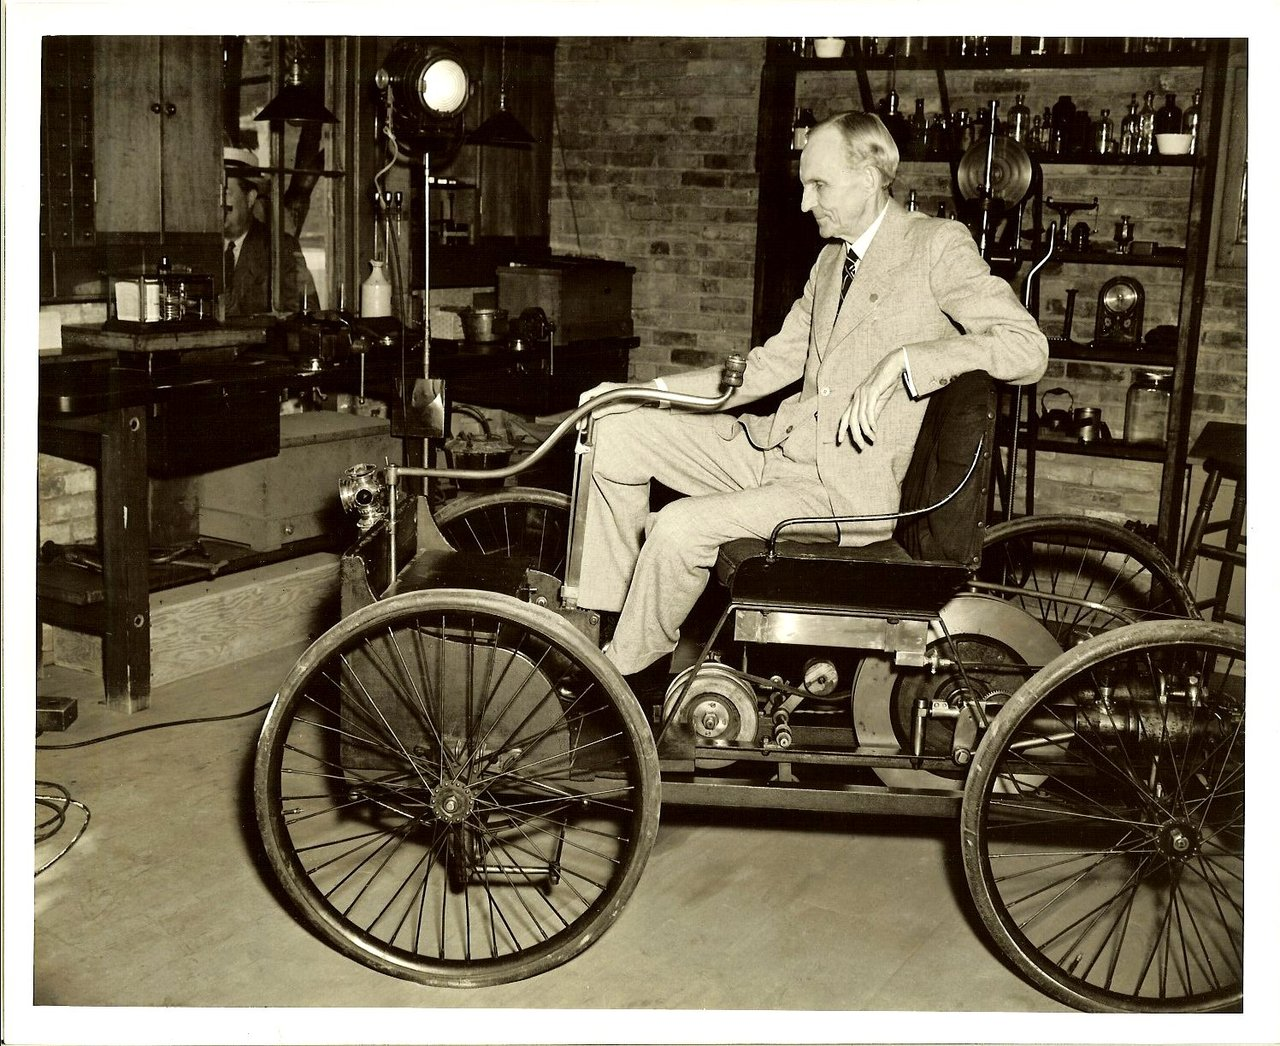 a biography of henry ford a revolutionary automobile manufacturer There was always a great deal of huckleberry finn about henry ford of licensed automobile manufacturers only and revolutionary automobile of.